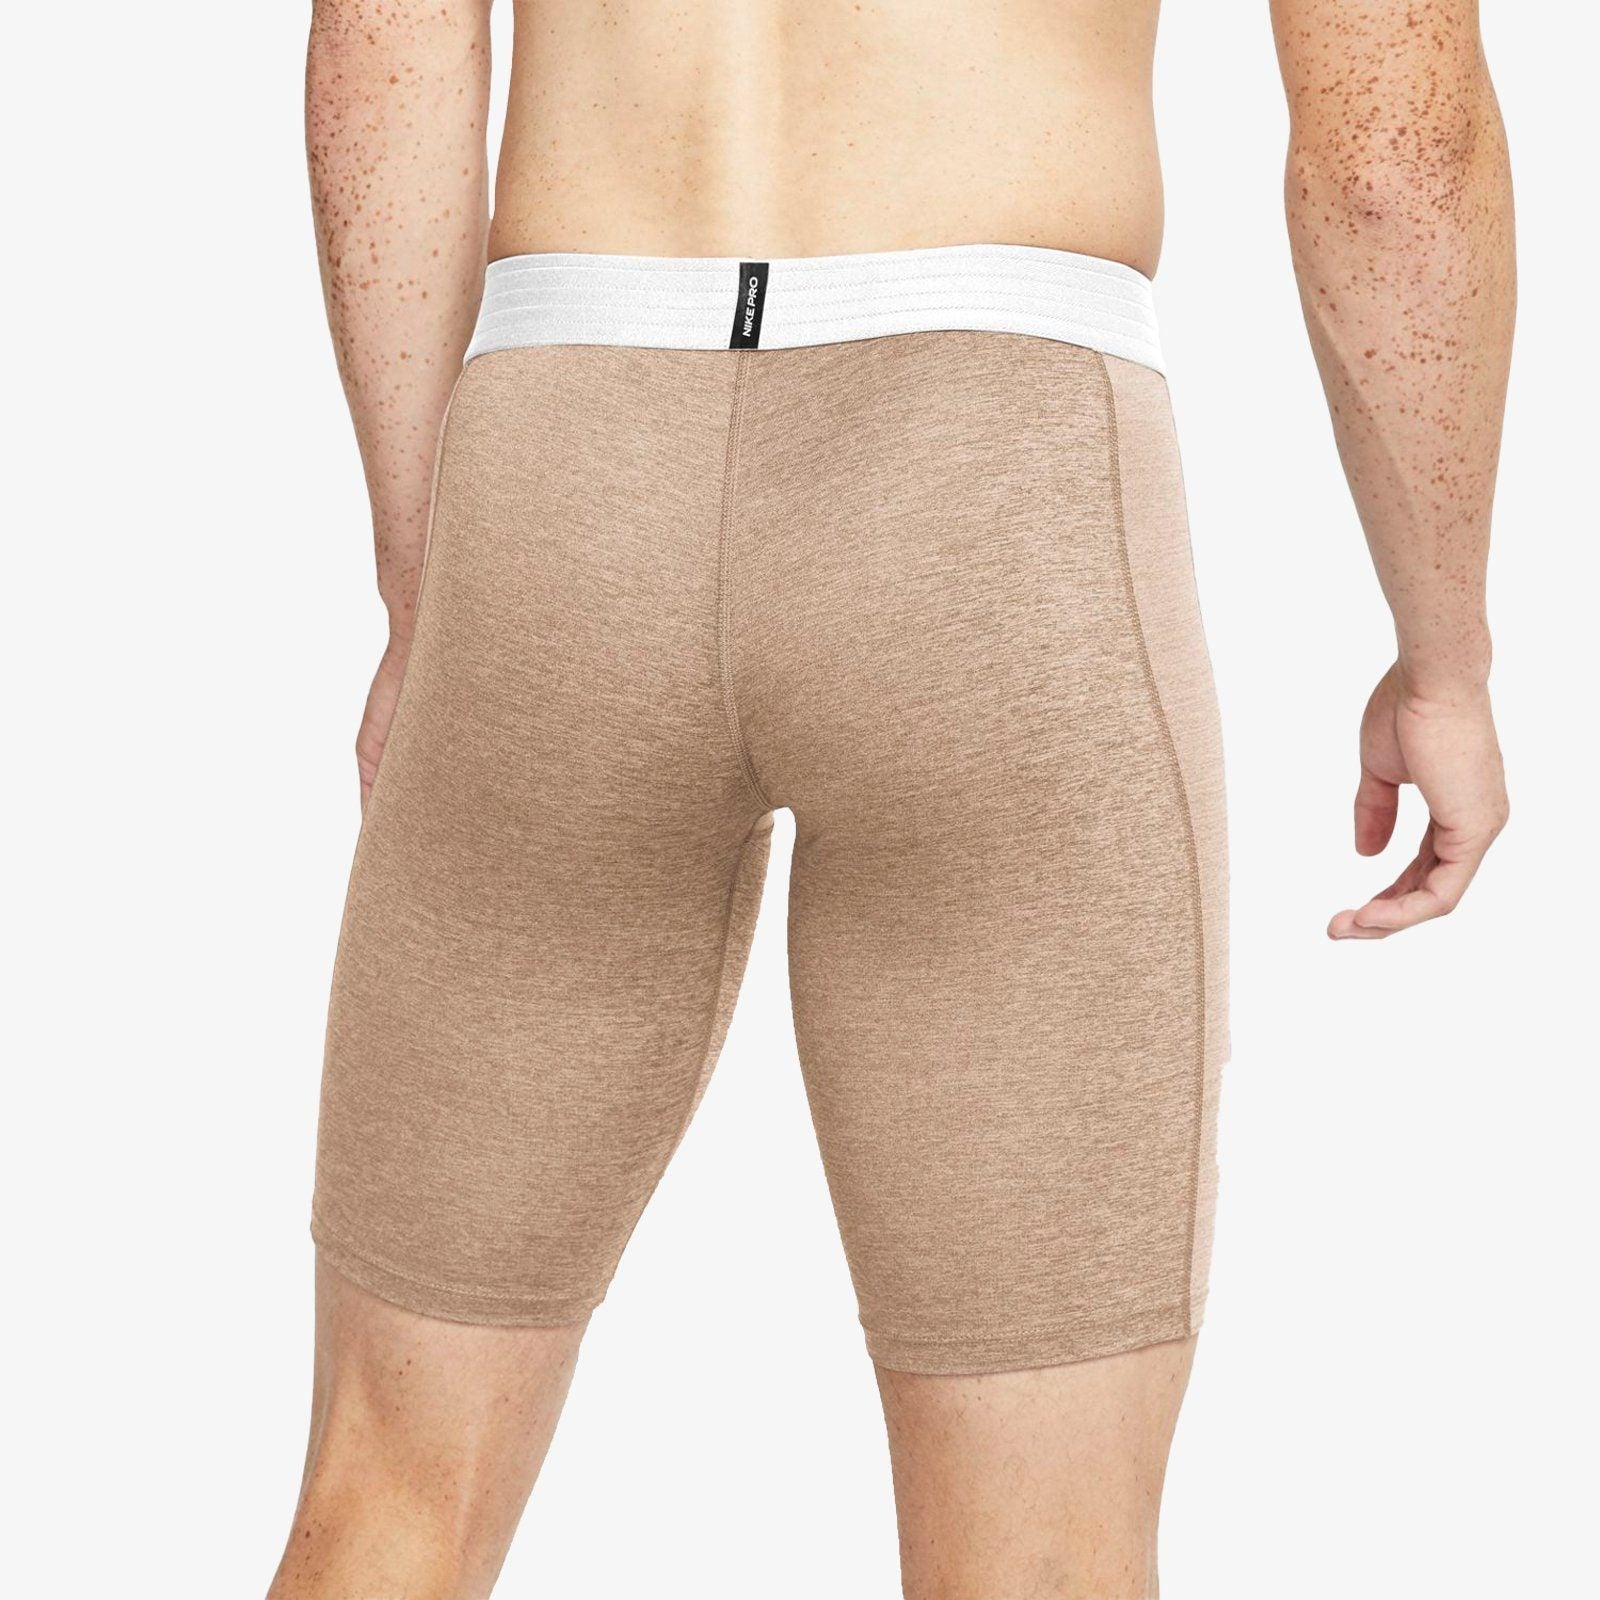 Nike Pro Mens Long Shorts - Shimmer/White SP-ApparelShorts-Mens Nike